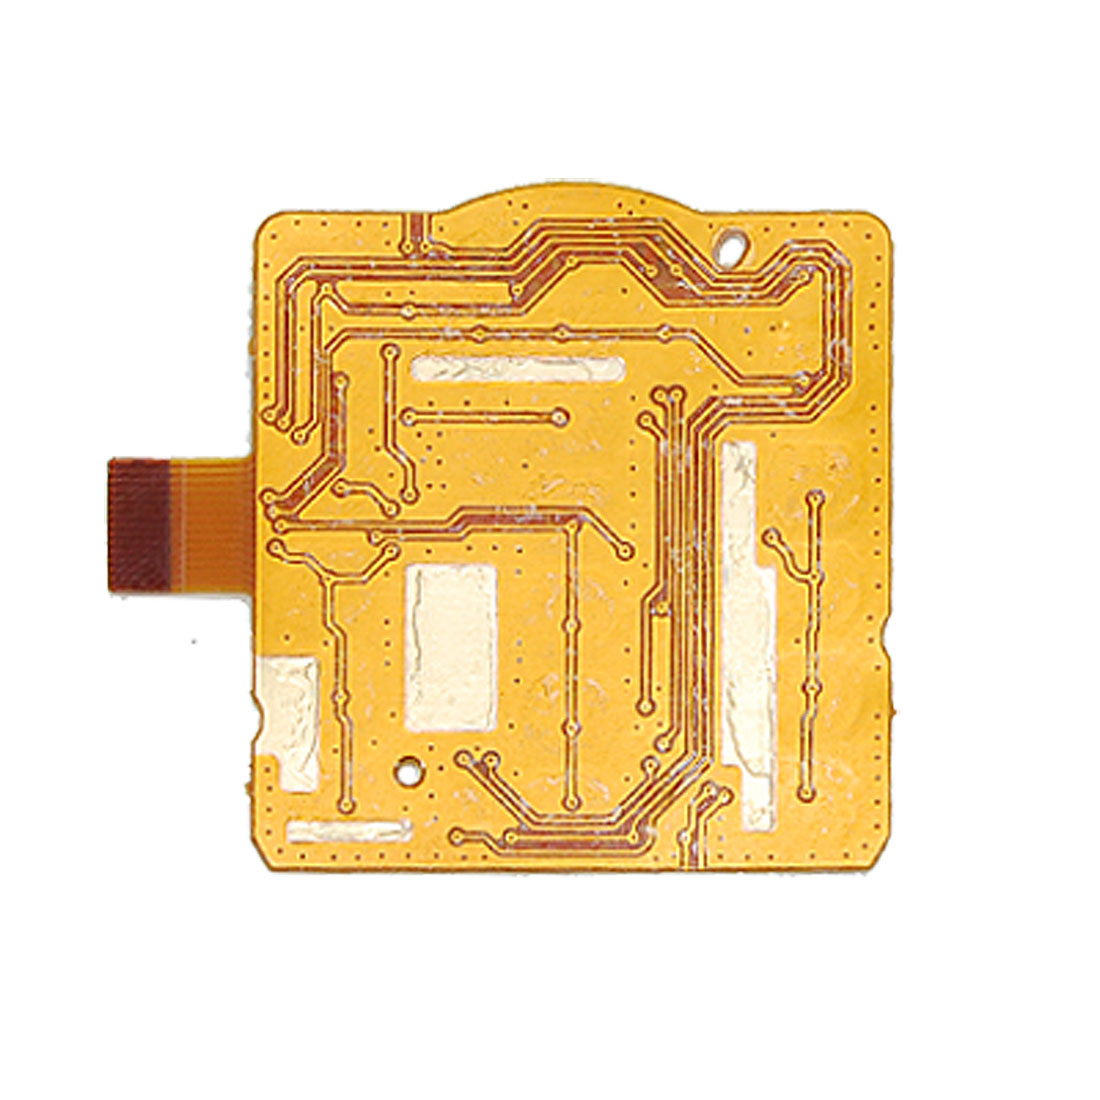 Keypad Board Flex Cable for Nokia 2600C 2600 Classic